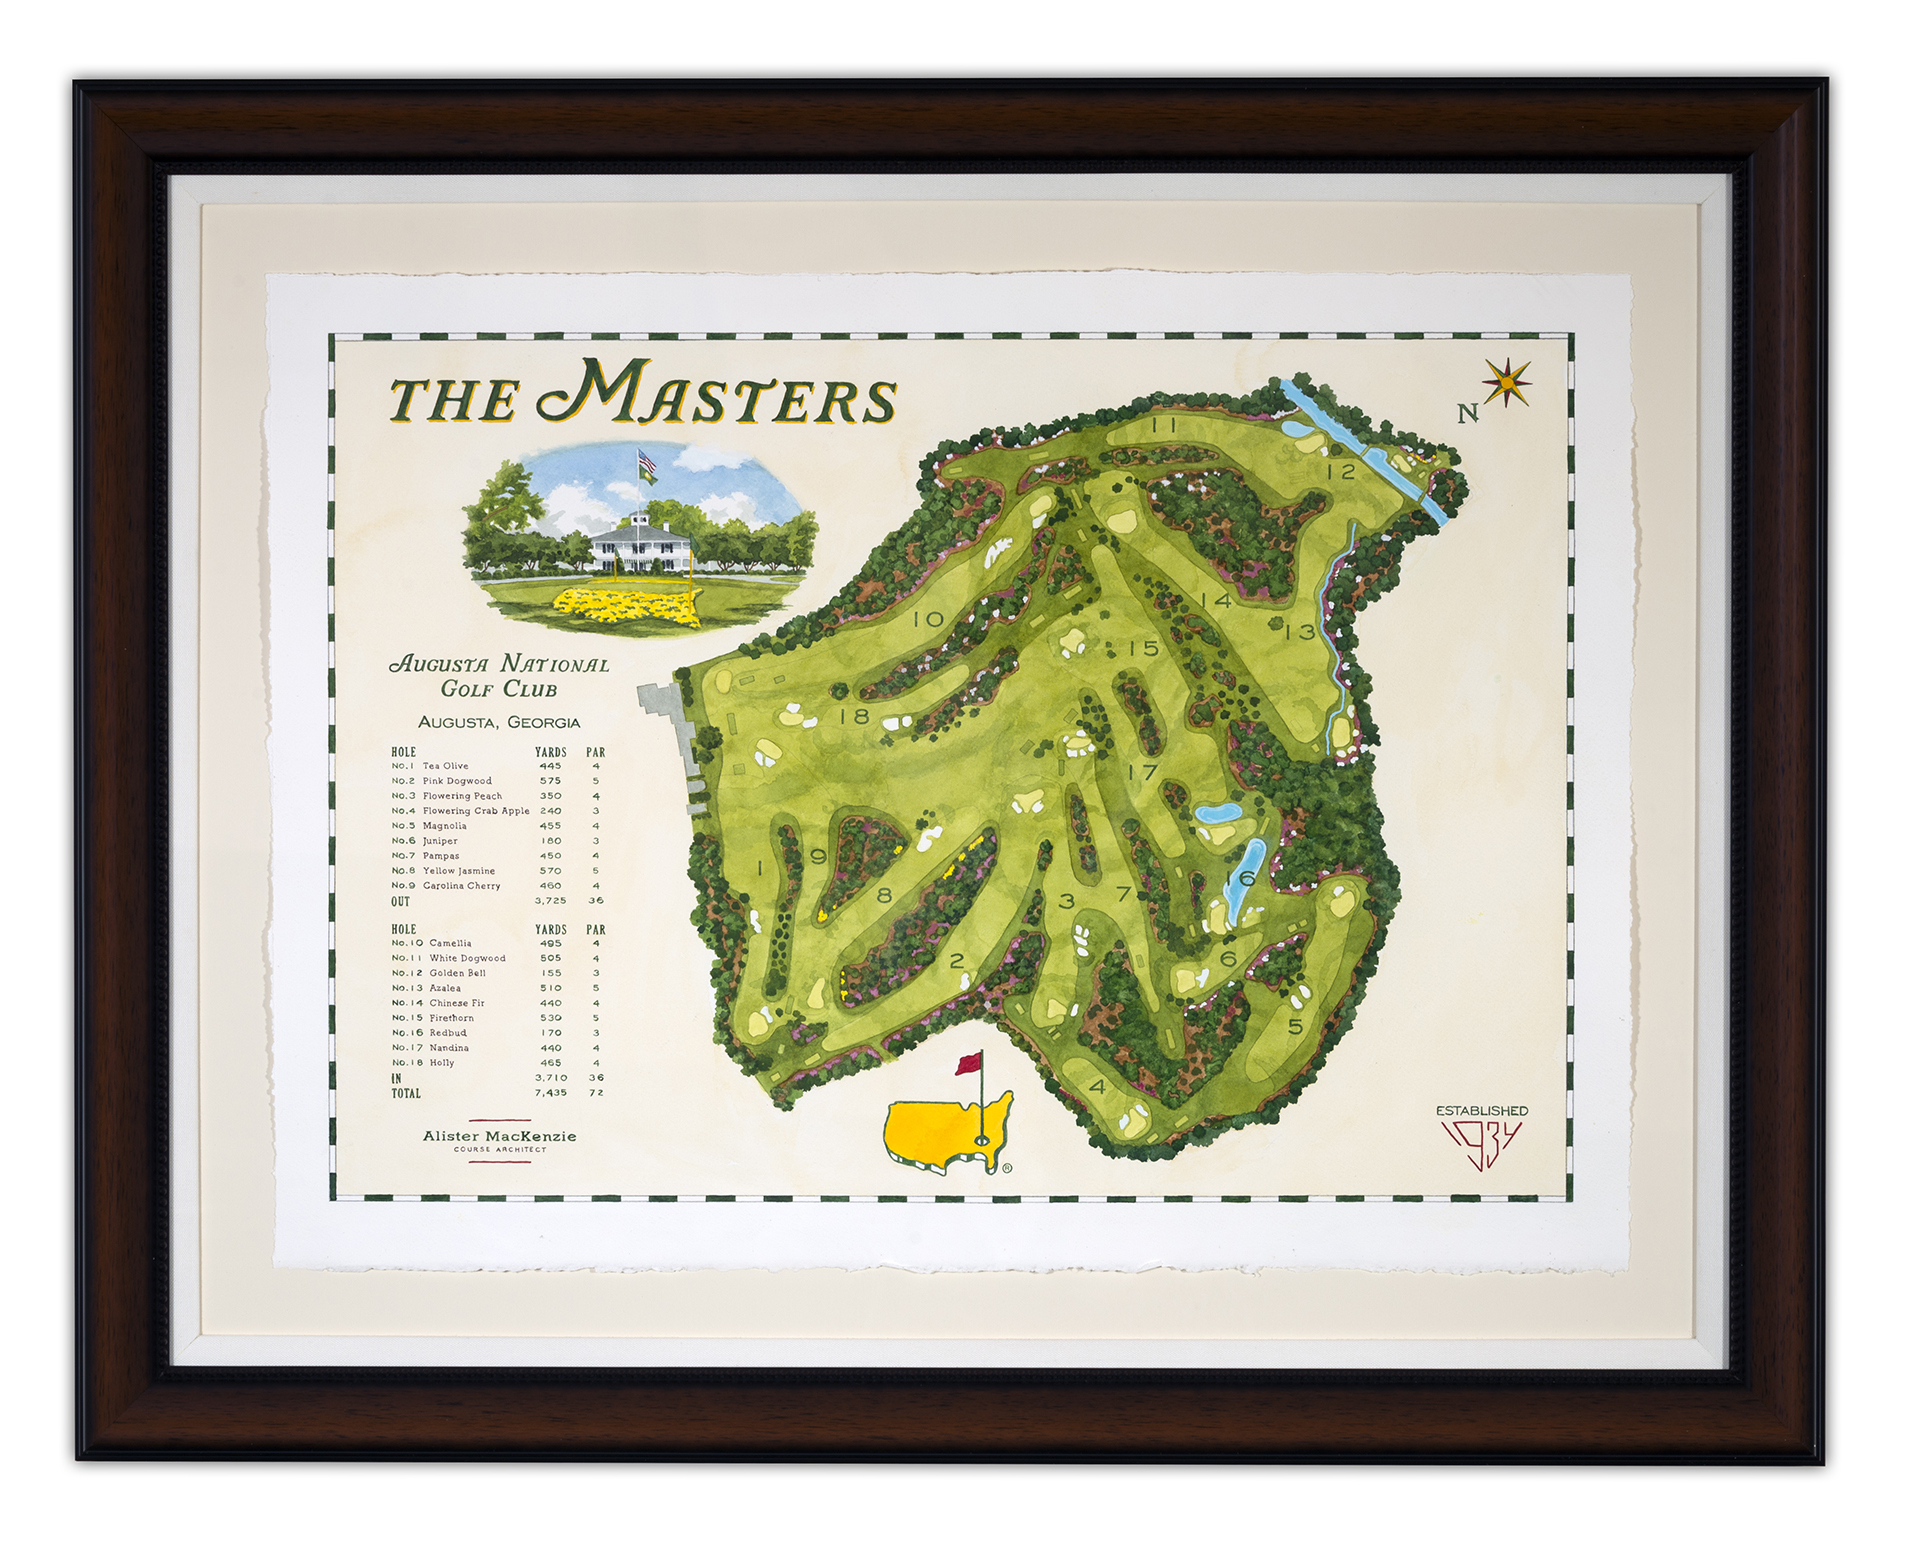 masters, course map, pen & ink drawing, lee wynski ... on trout fishing in georgia map, hunting areas in georgia map, home in georgia map, dams in georgia map, hiking in georgia map, rv campgrounds in georgia map, coffee shops in georgia map, covered bridges in georgia map, civil war forts in georgia map, historic sites in georgia map, parks in georgia map, casinos in georgia map, gold mines in georgia map, trout streams in georgia map, universities in georgia map, hotels in georgia map, beaches in georgia map, highways in georgia map, hospitals in georgia map, major airports in georgia map,